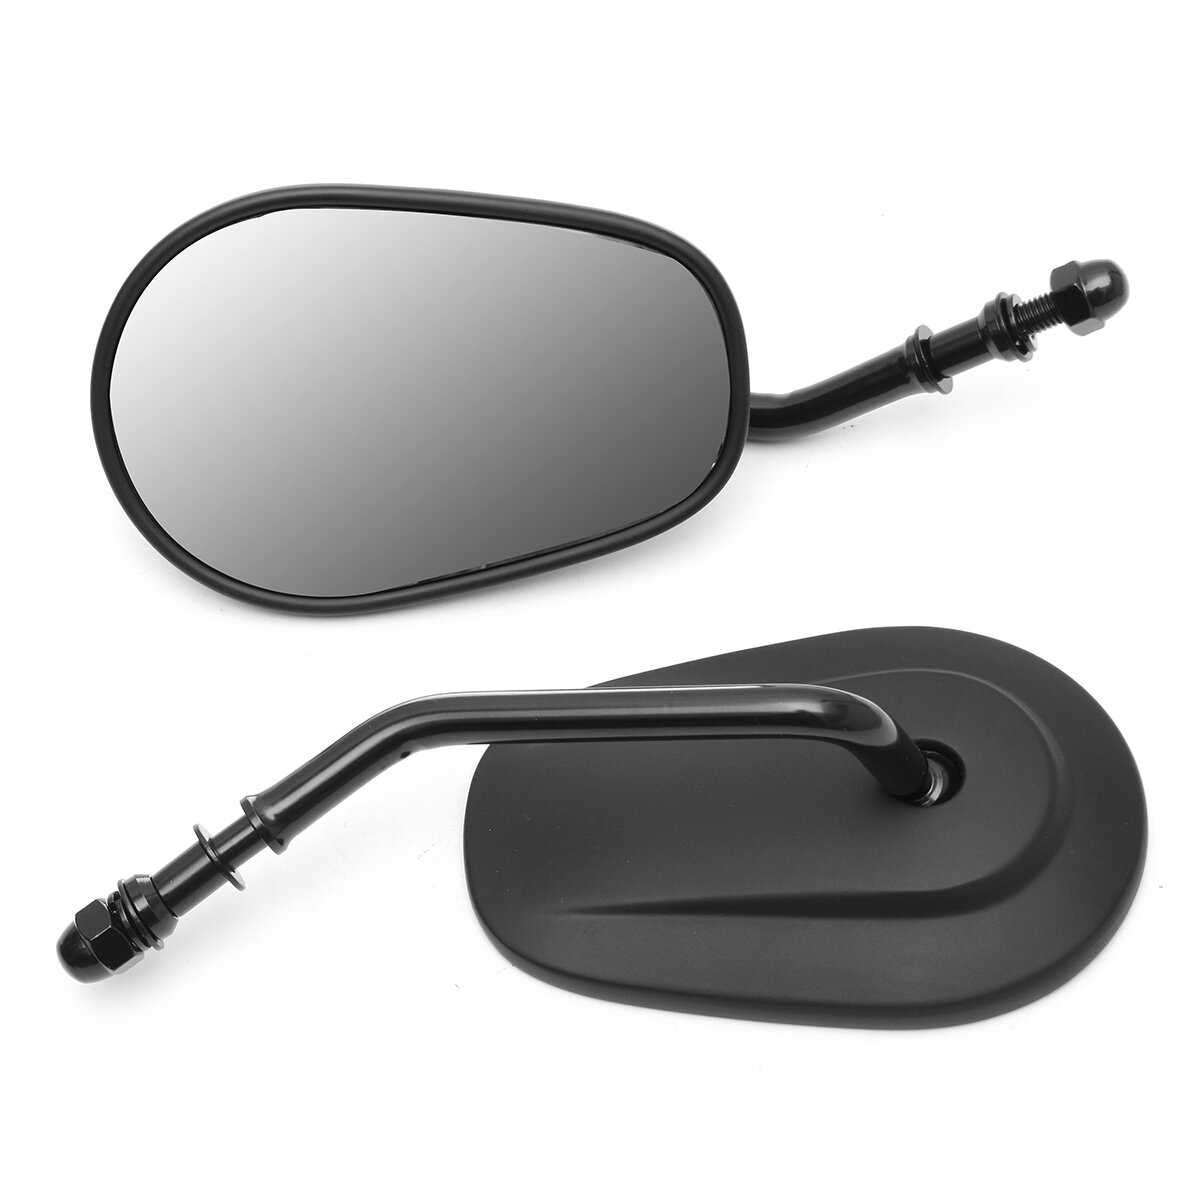 8mm Rear View Side Mirror Fits For Harley Davidson Sportster Touring XL 883